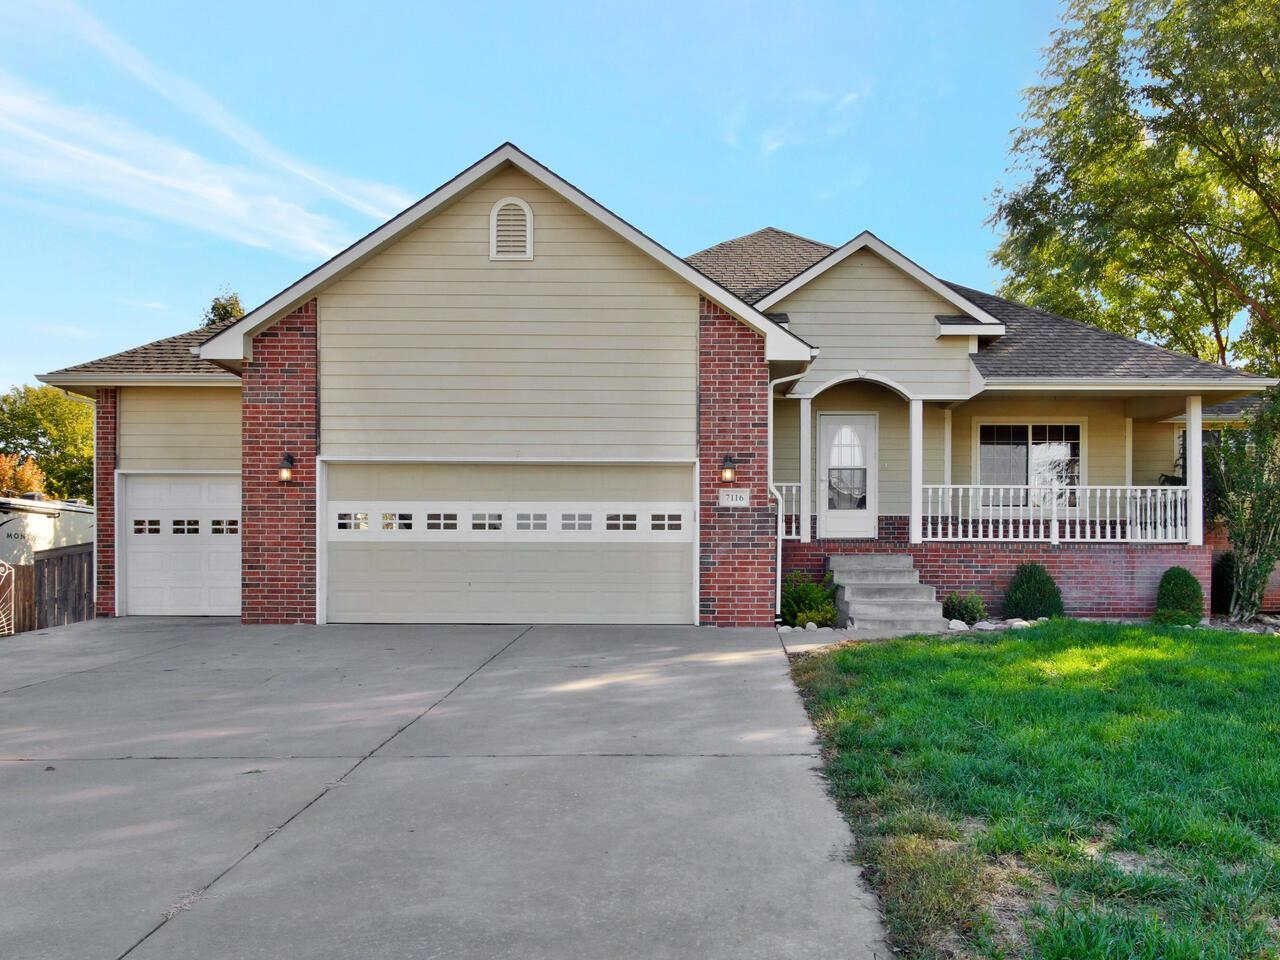 Nestled on just under a 1/2 acre, custom built 4 bedroom, 3 bath home with 20x40 swimming pool, 20x2